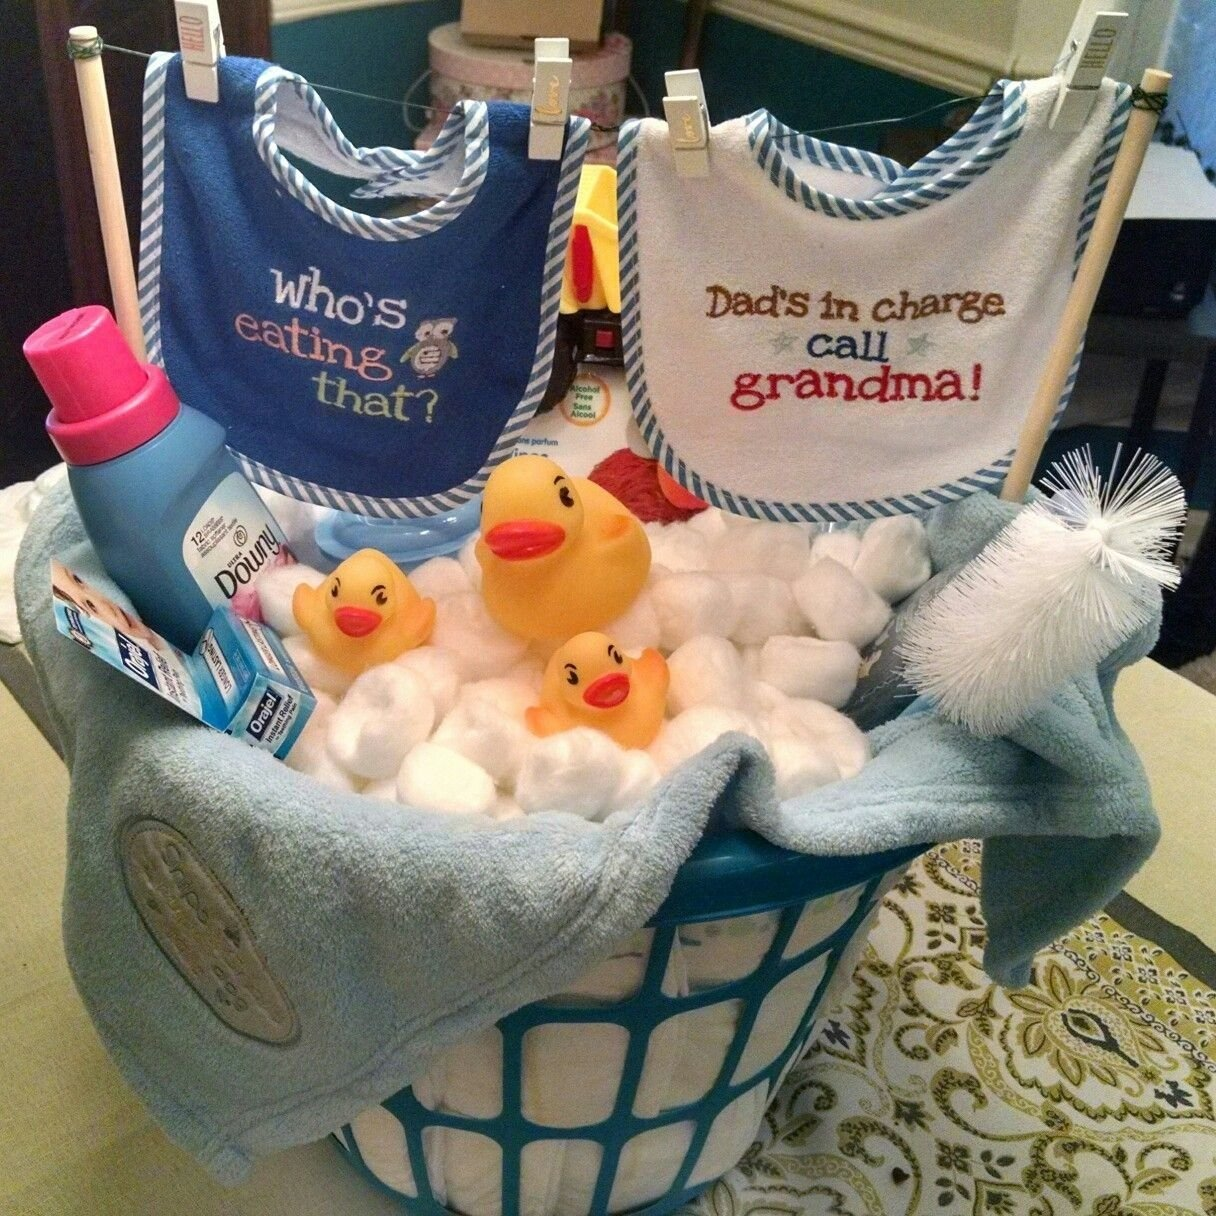 repurposing laundry baskets: make a washing machine for kids, use as